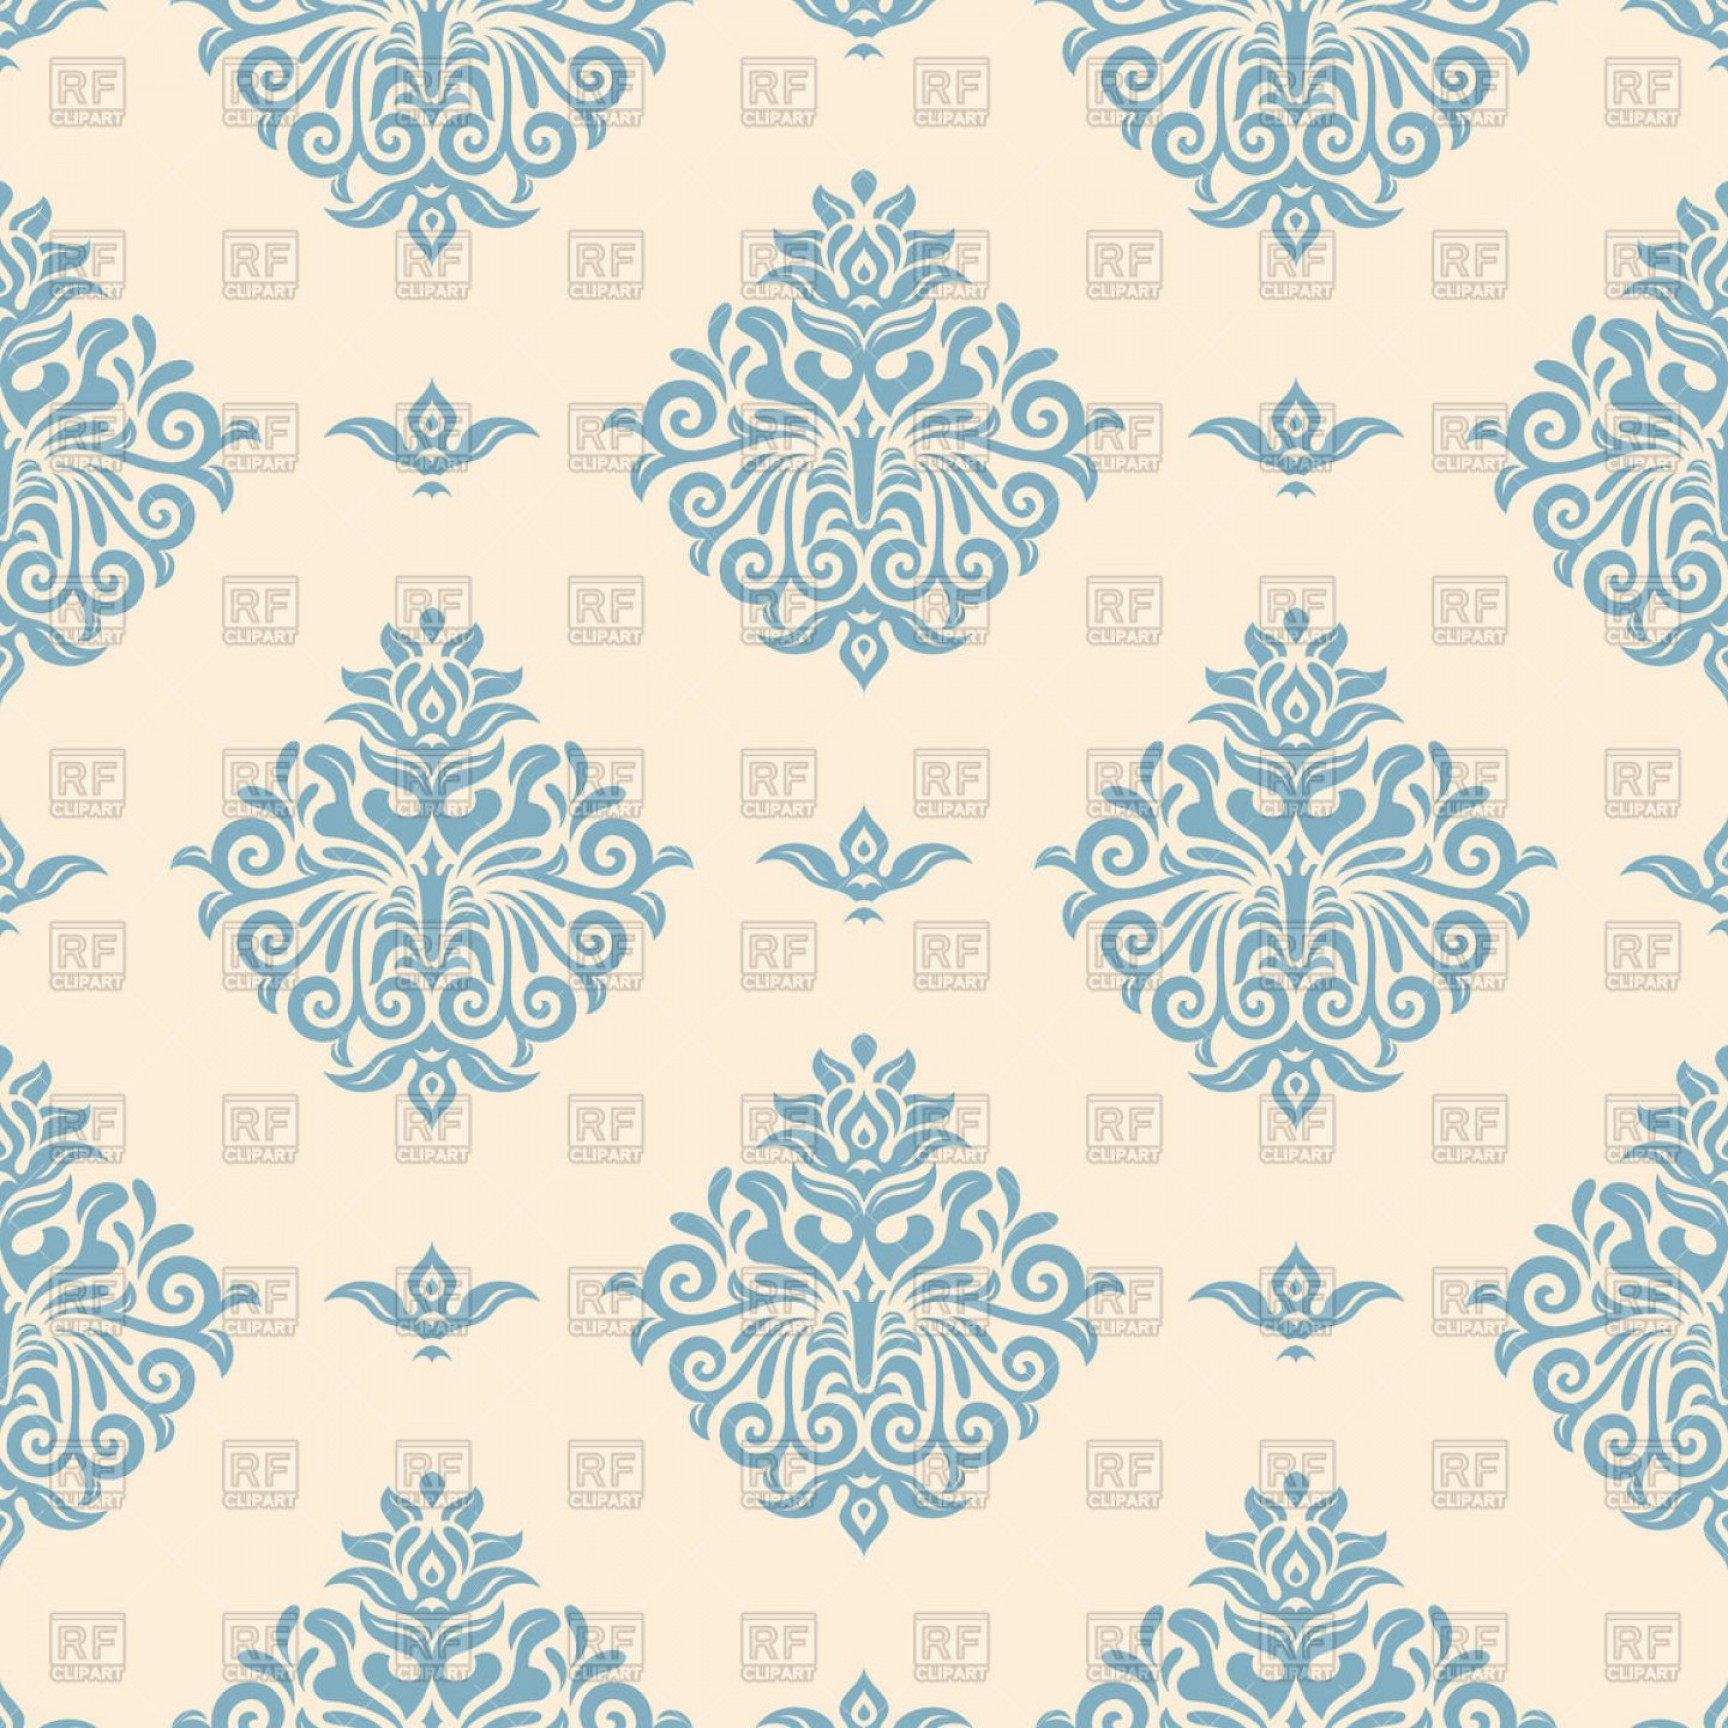 Wallpaper clipart vector jpg freeuse download Blue Vintage Wallpaper With Victorian Ornament Vector ... jpg freeuse download